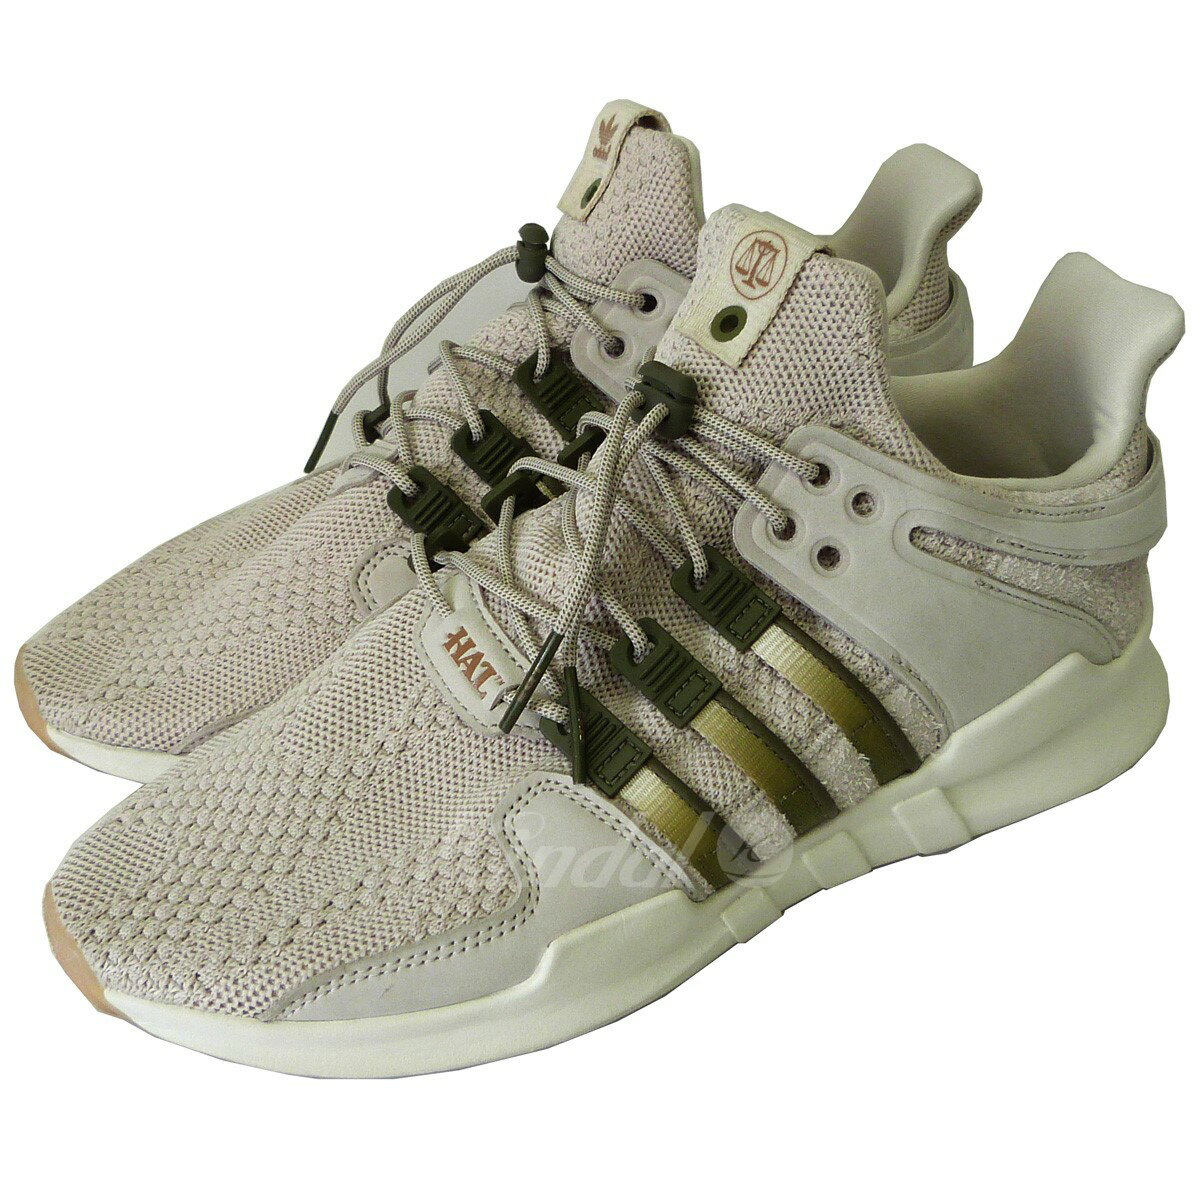 new arrival 49527 78bcd 【中古】Adidas Consortium×THE HIGHS AND LOWSCM7873 「EQT SUPPORT ADV HAL」スニーカー  グレー サイズ:26.5cm|カインドオル